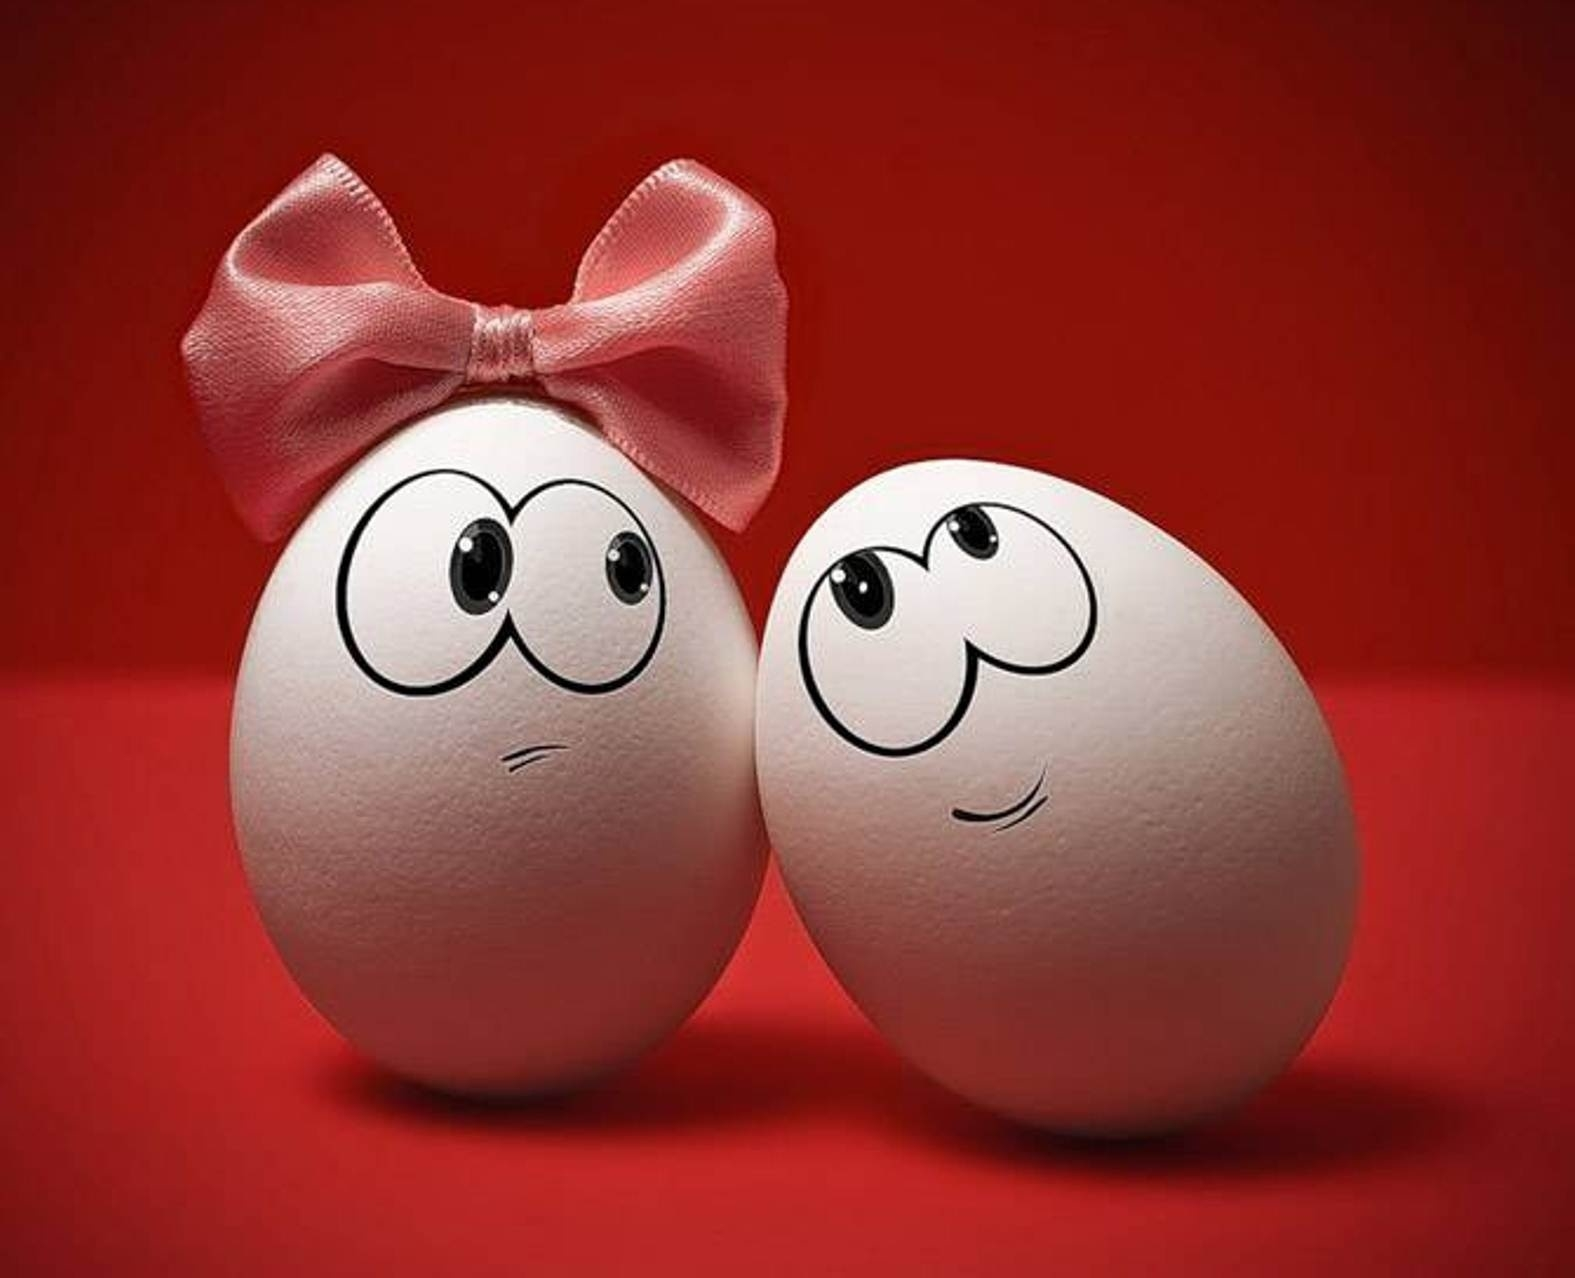 88762 Screensavers and Wallpapers Emotions for phone. Download Eggs, Miscellanea, Miscellaneous, Couple, Pair, Bow, Emotions pictures for free